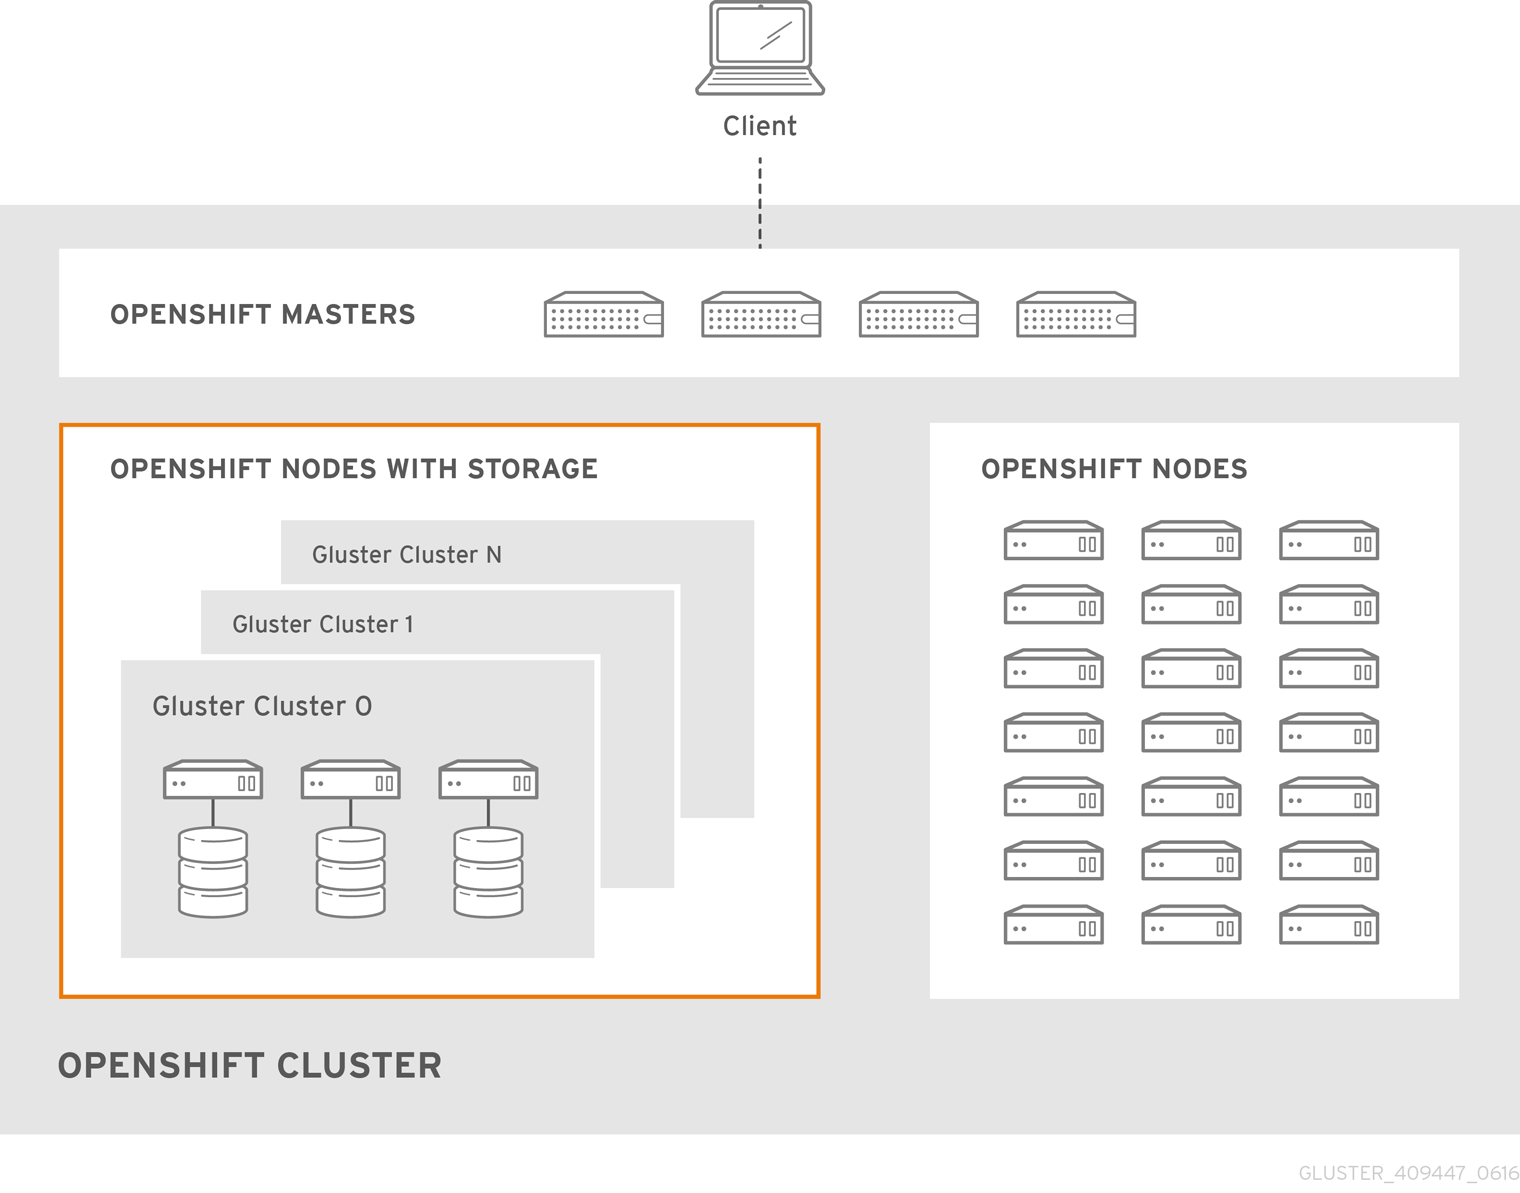 Architecture - Container-Native Storage for OpenShift Container Platform